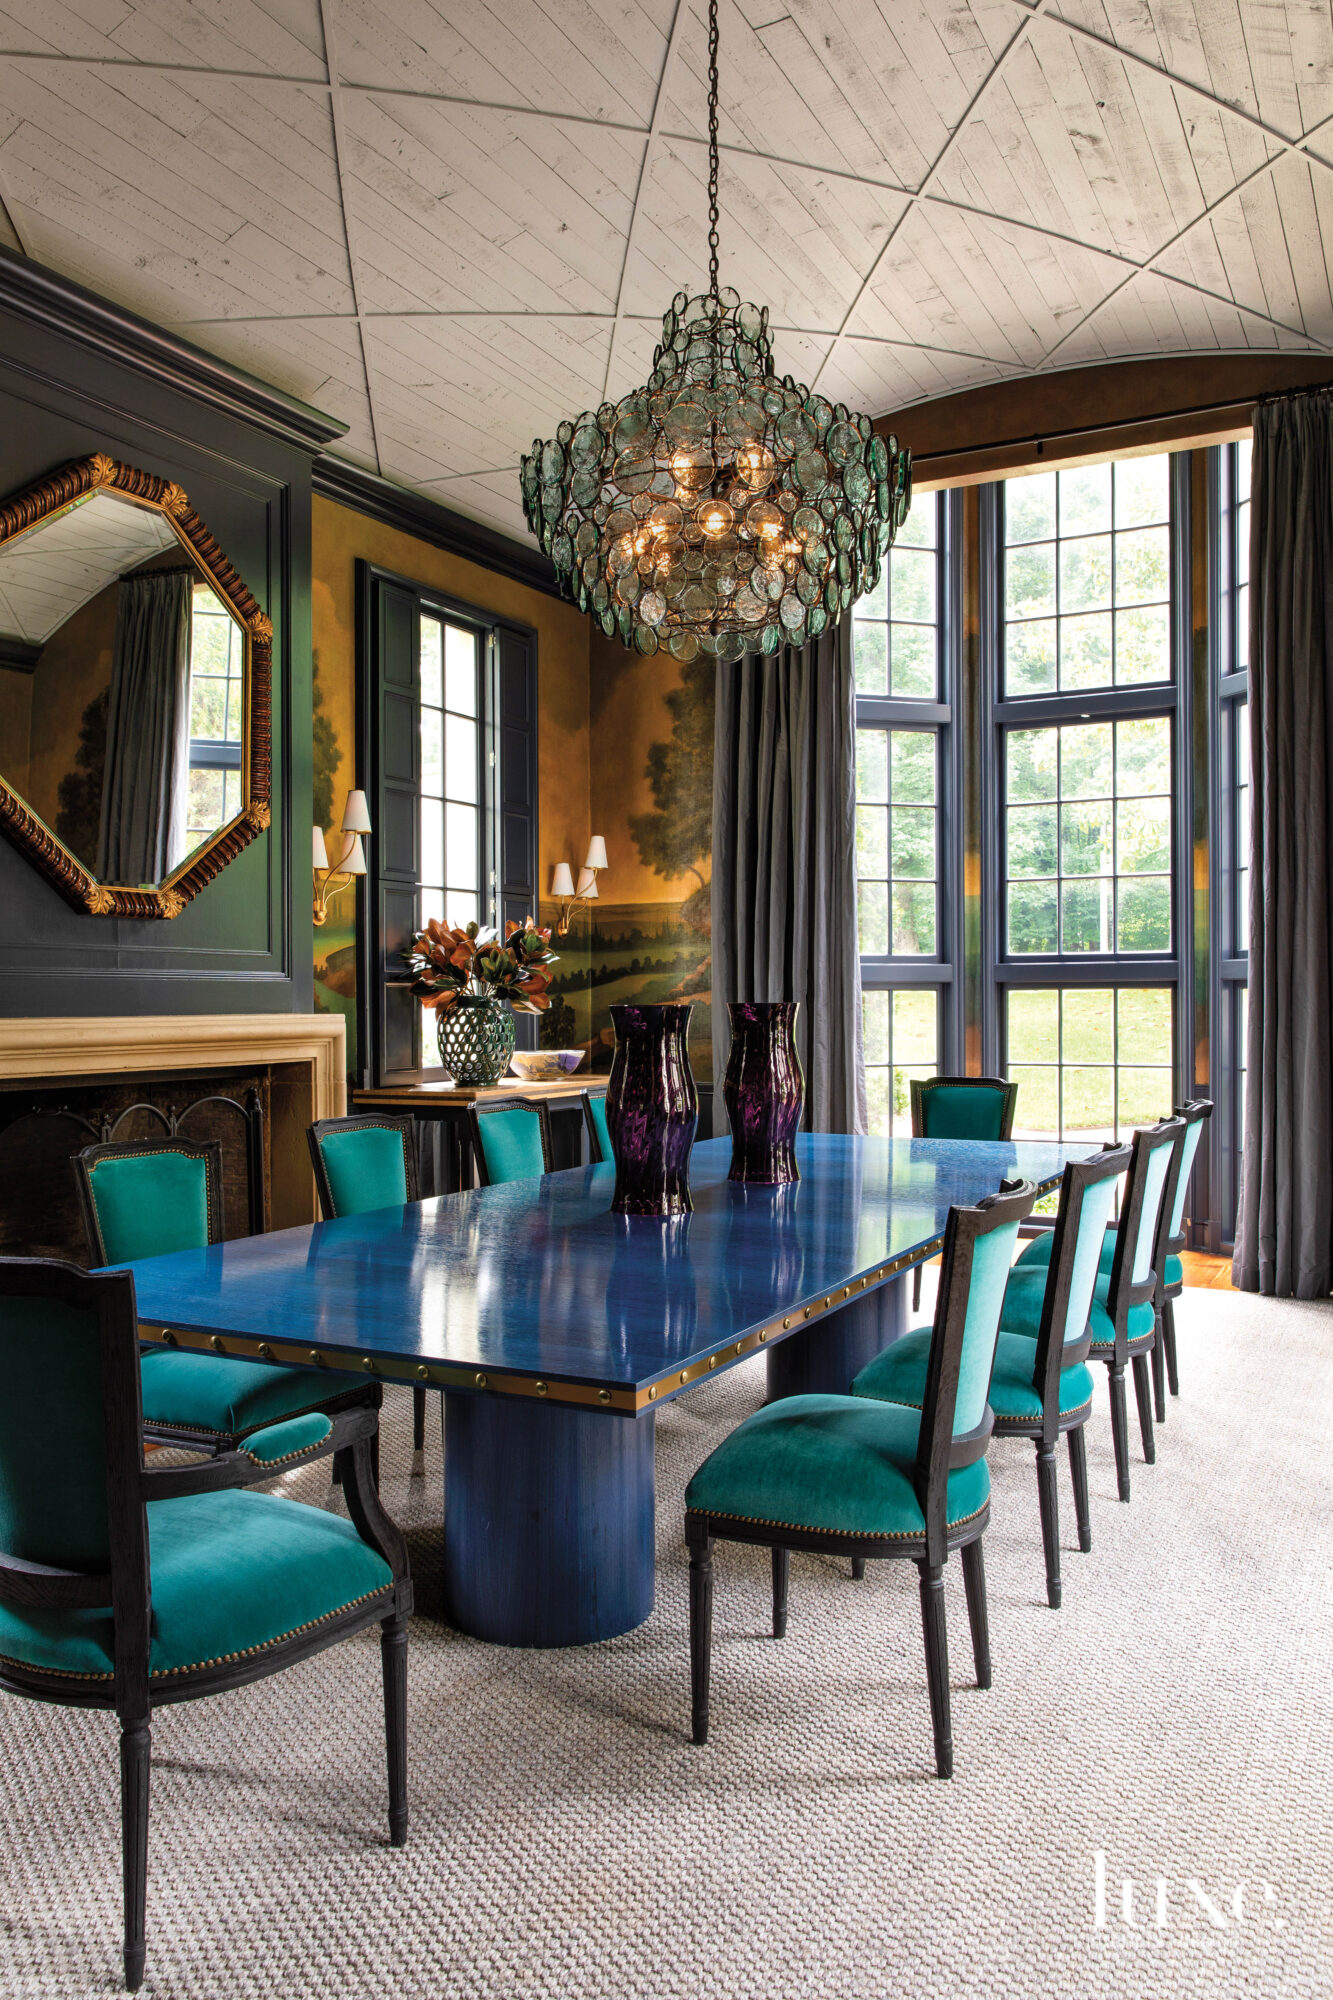 Dining room with scenic wallpaper,...